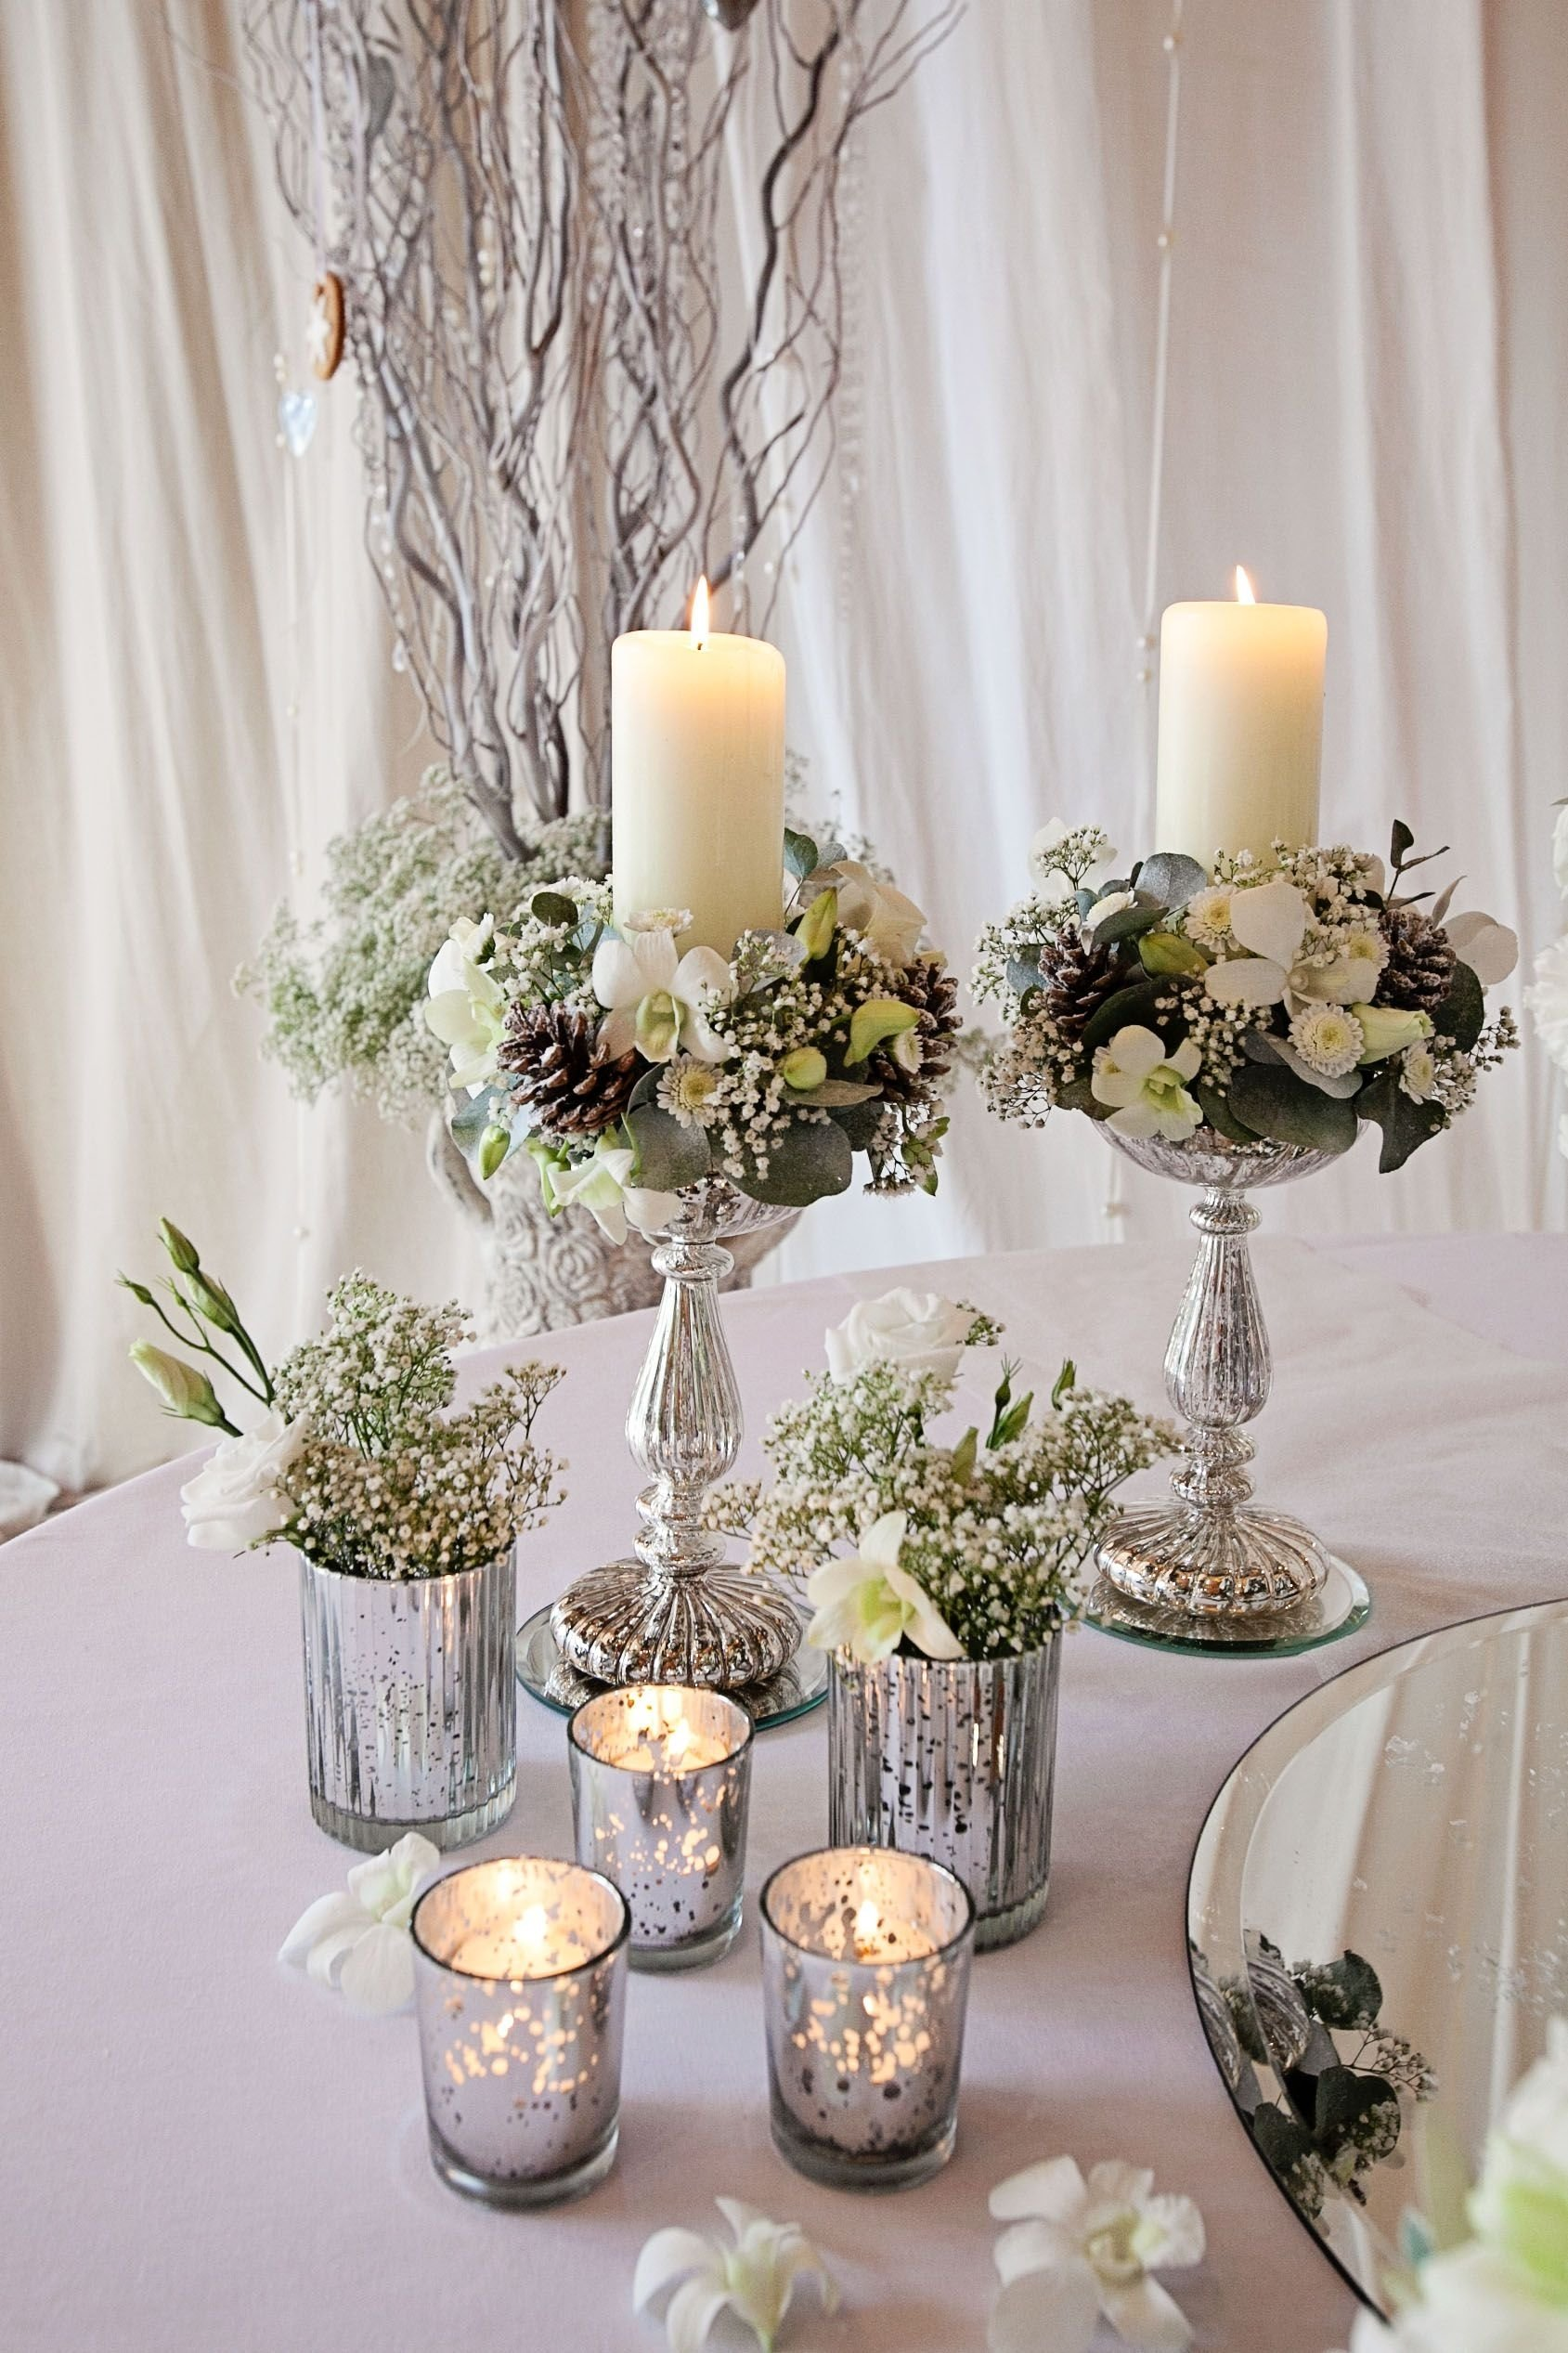 10 Fashionable Wedding Centerpiece Ideas Without Flowers tiara flower arrangements candle stand arrangements and silver 2020